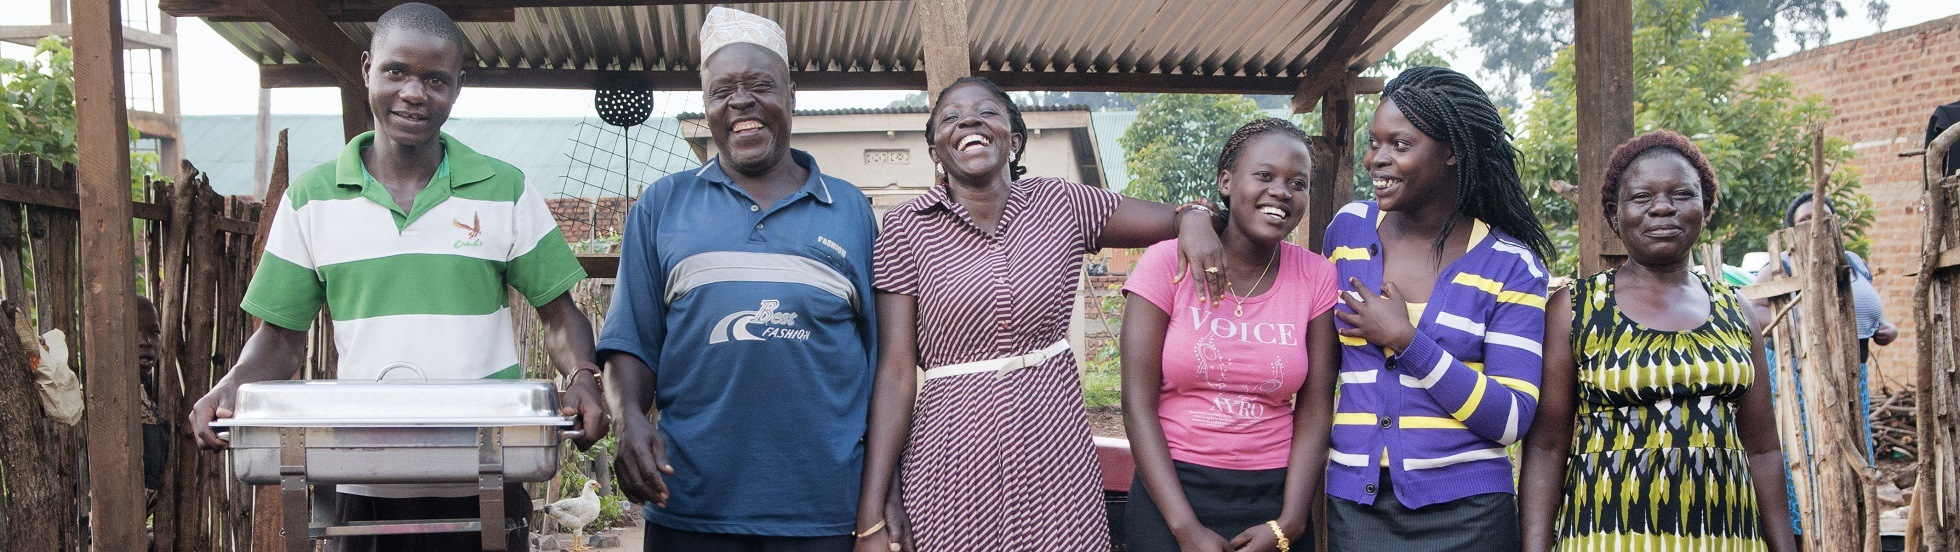 Leticia Nabirye, 30 (in dress with stripes), with her restaurant's staff in the kitchen at the back of the restaurant in Kibuku Town Council, Kibuku District, Uganda on August 6 2013.